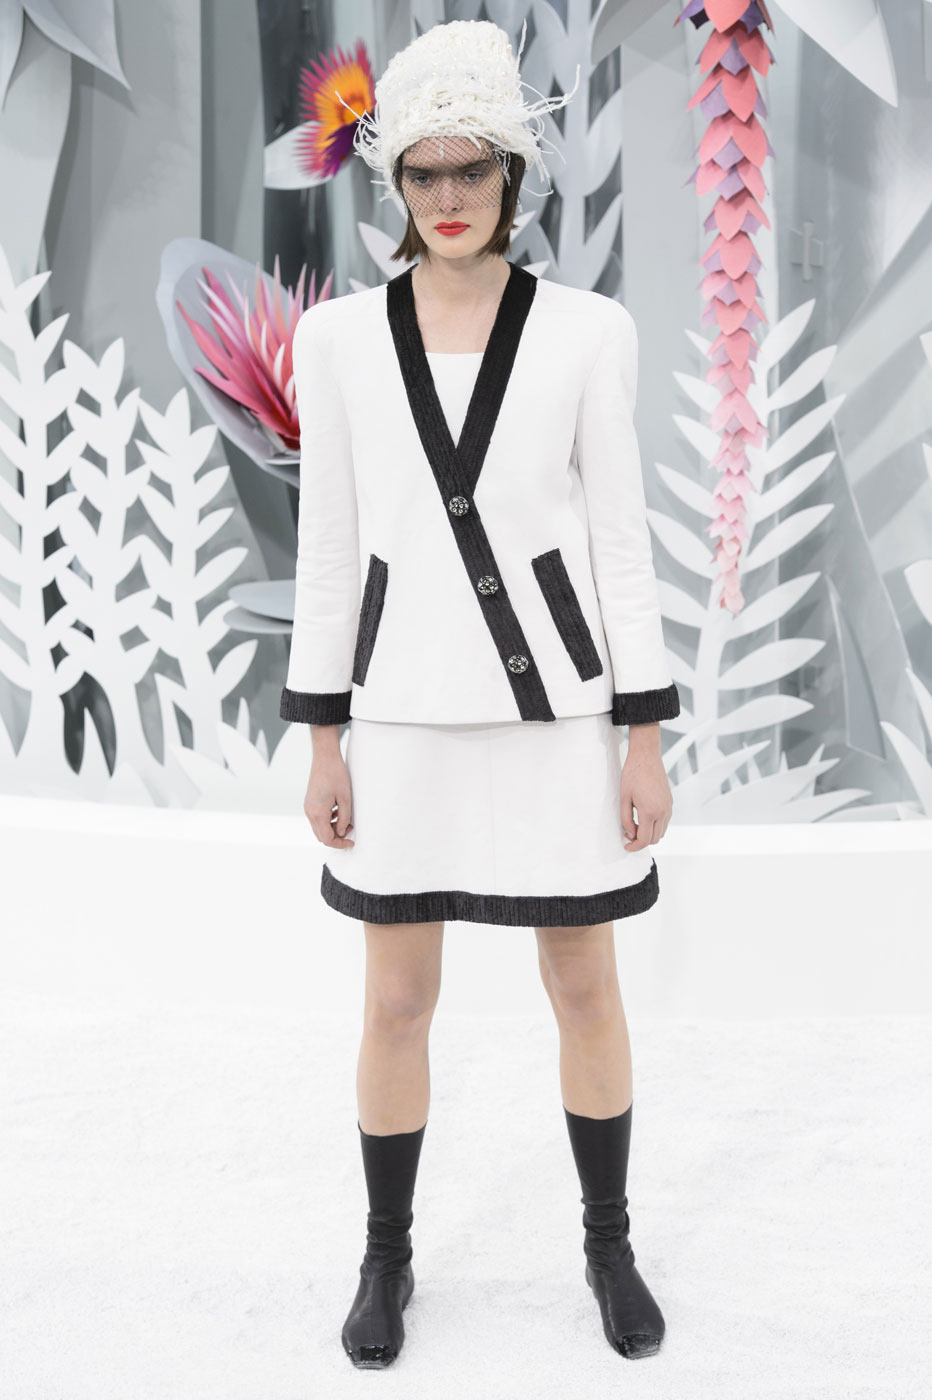 Chanel-fashion-runway-show-haute-couture-paris-spring-summer-2015-the-impression-032